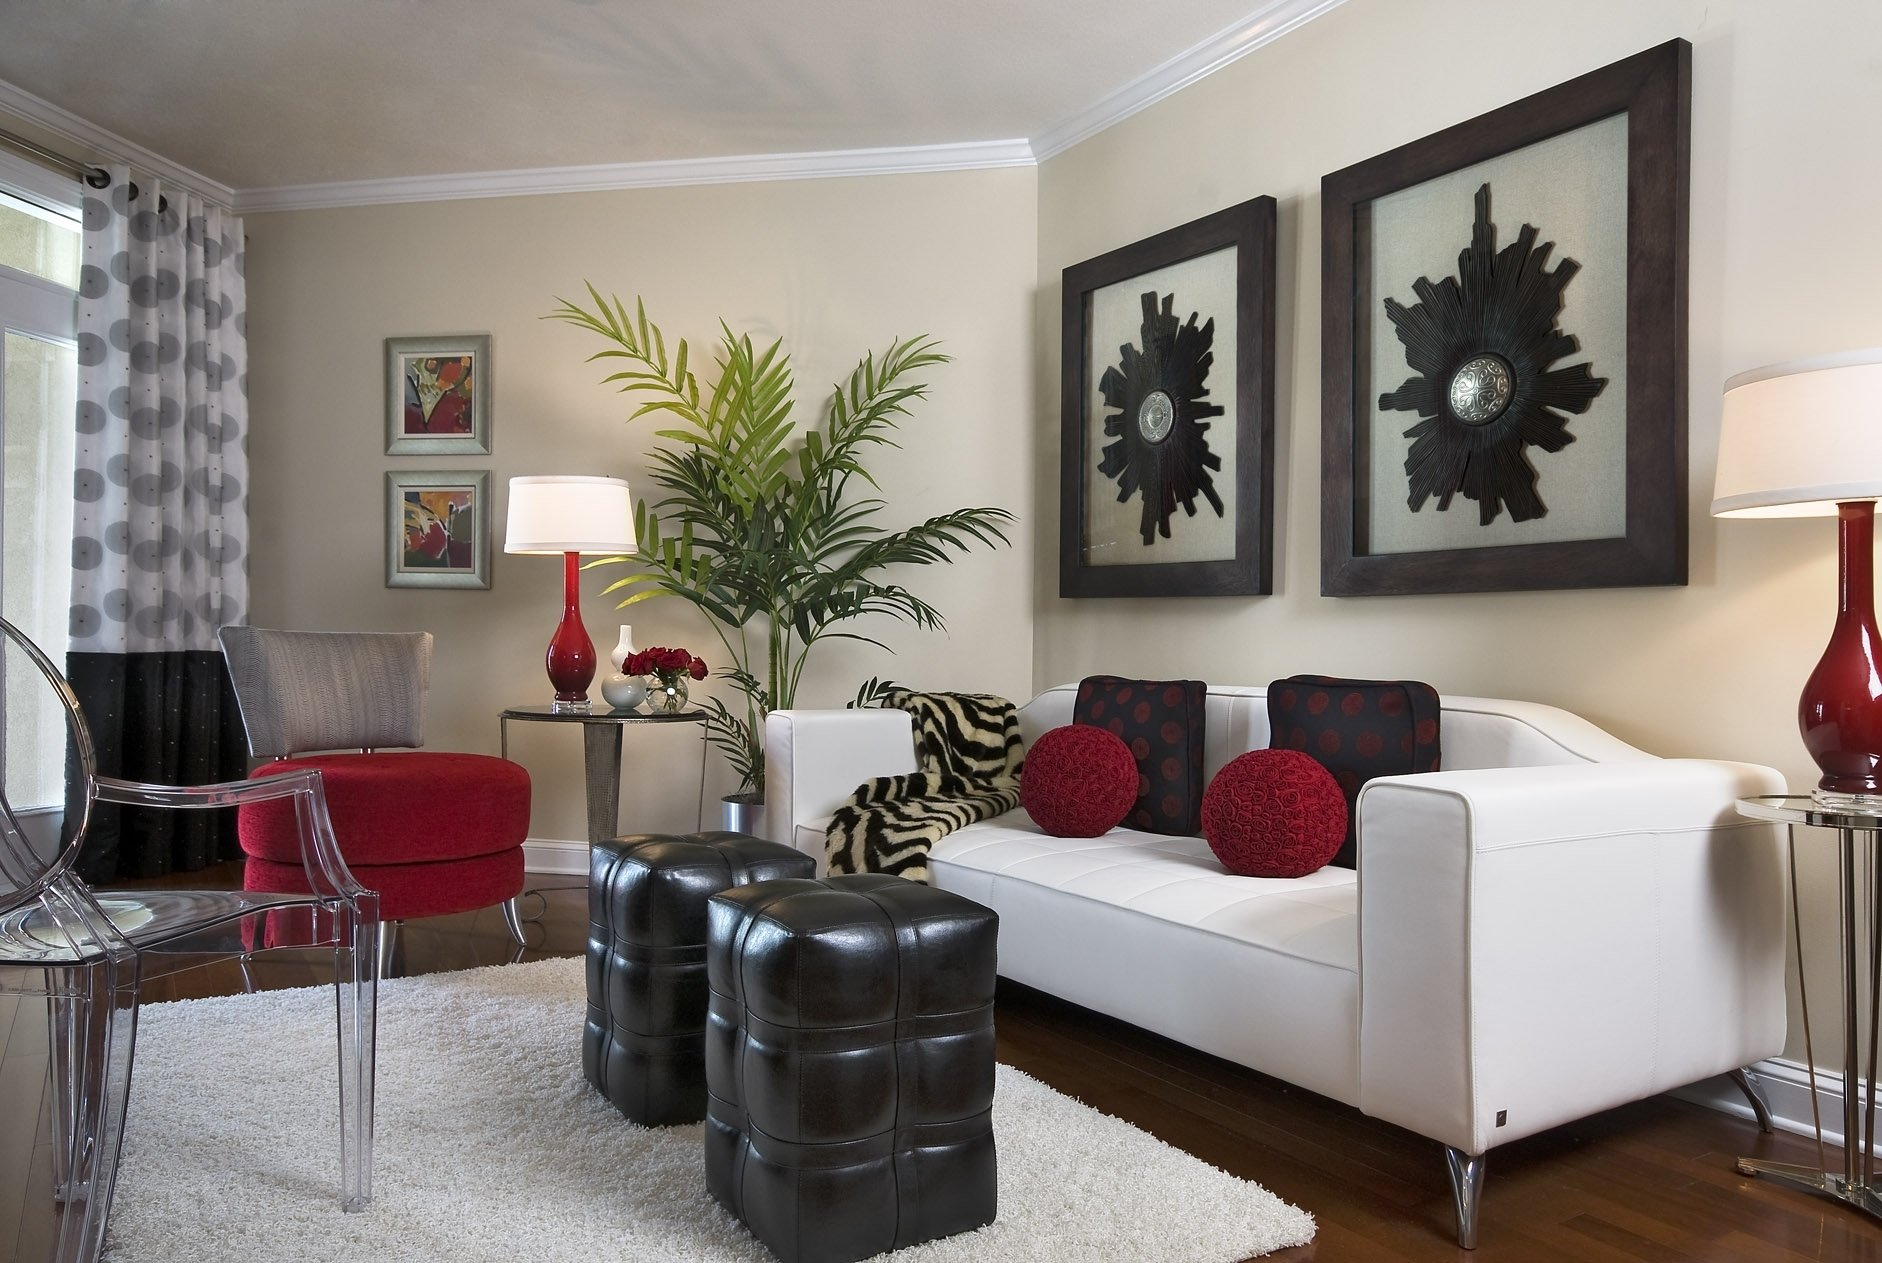 10 Trendy Decorating Ideas For Living Room design living room for small spaces 2 2021